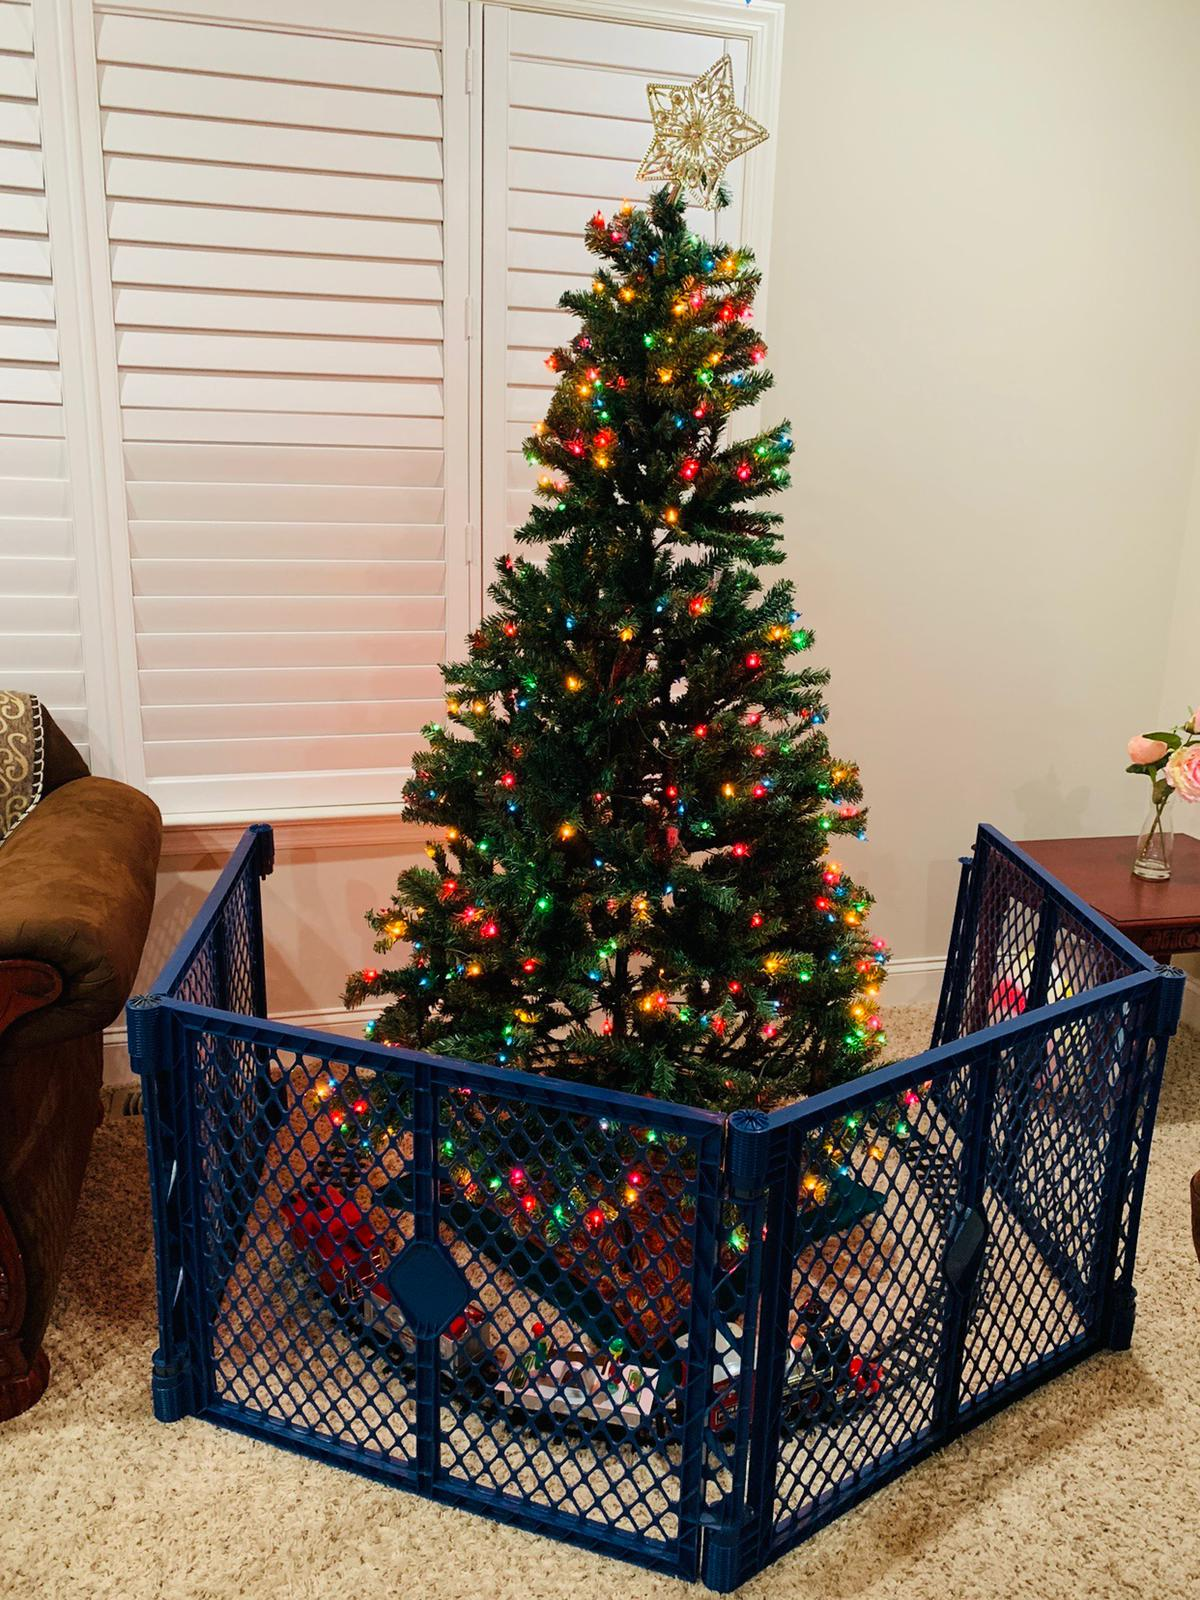 Baby Proof a Christmas Tree